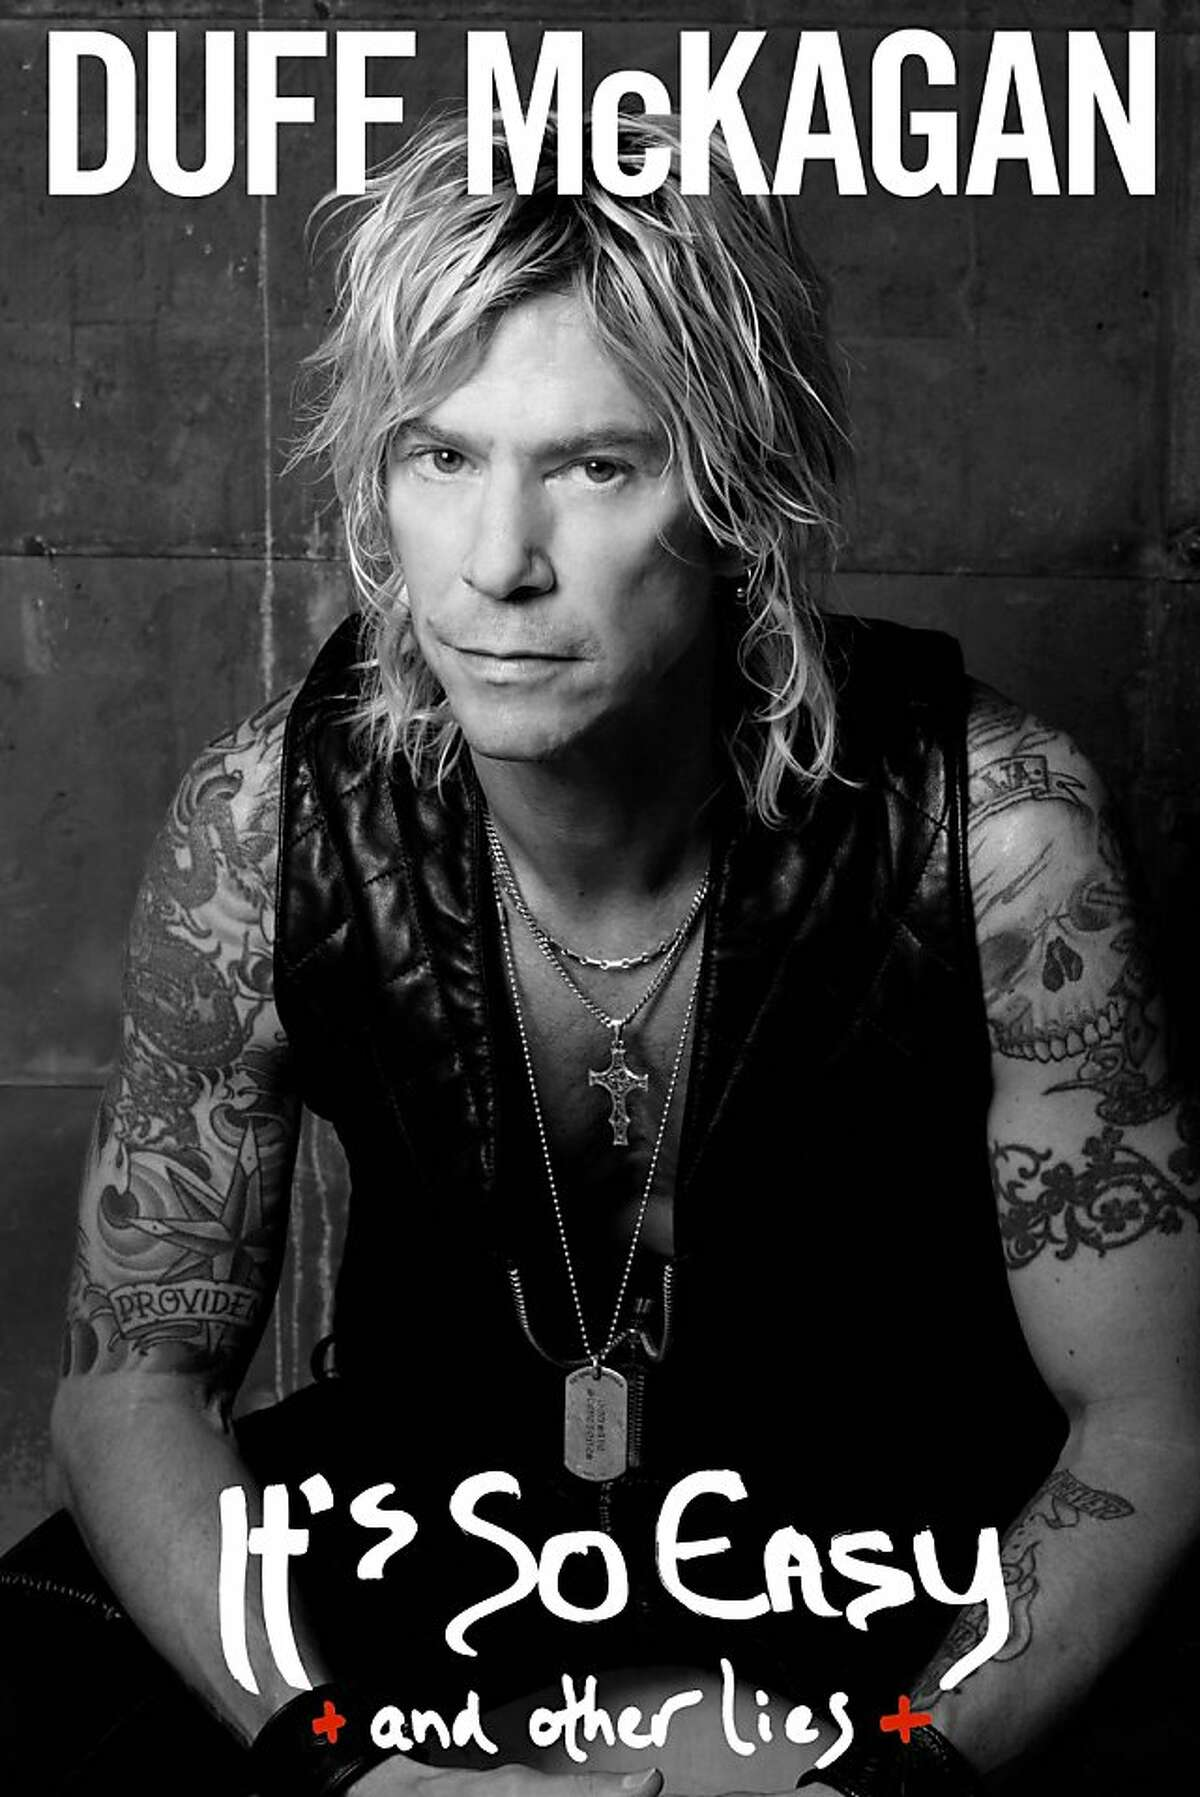 """Duff McKagan, """"It's So Easy (and Other Lies)"""" cover."""